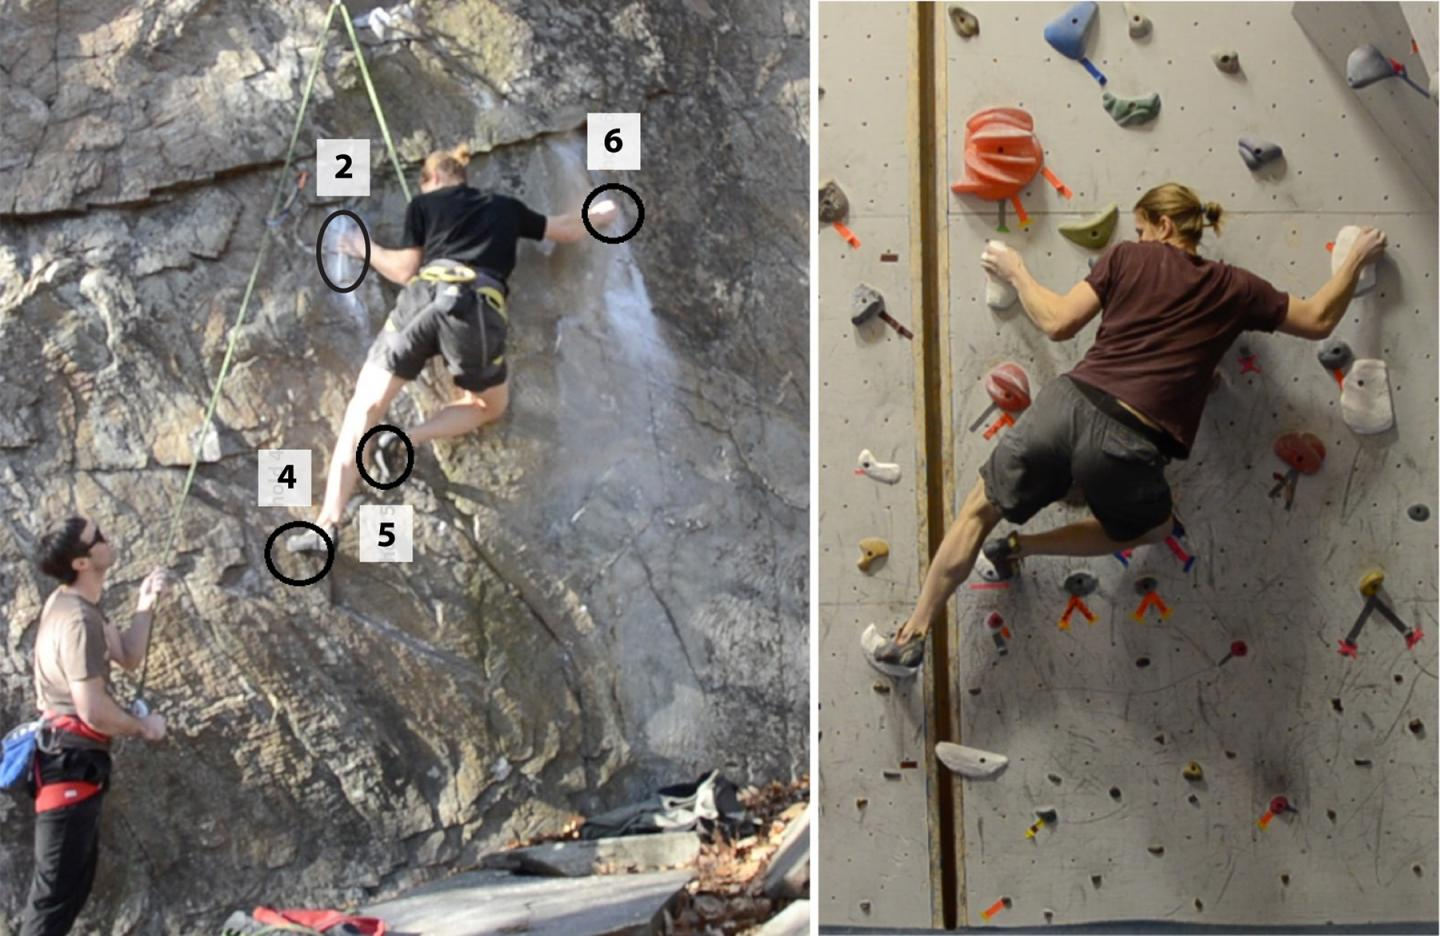 Crux of an Outdoor Climbing Route (Left)  Vs. One Using Fabricated Holds (Right)